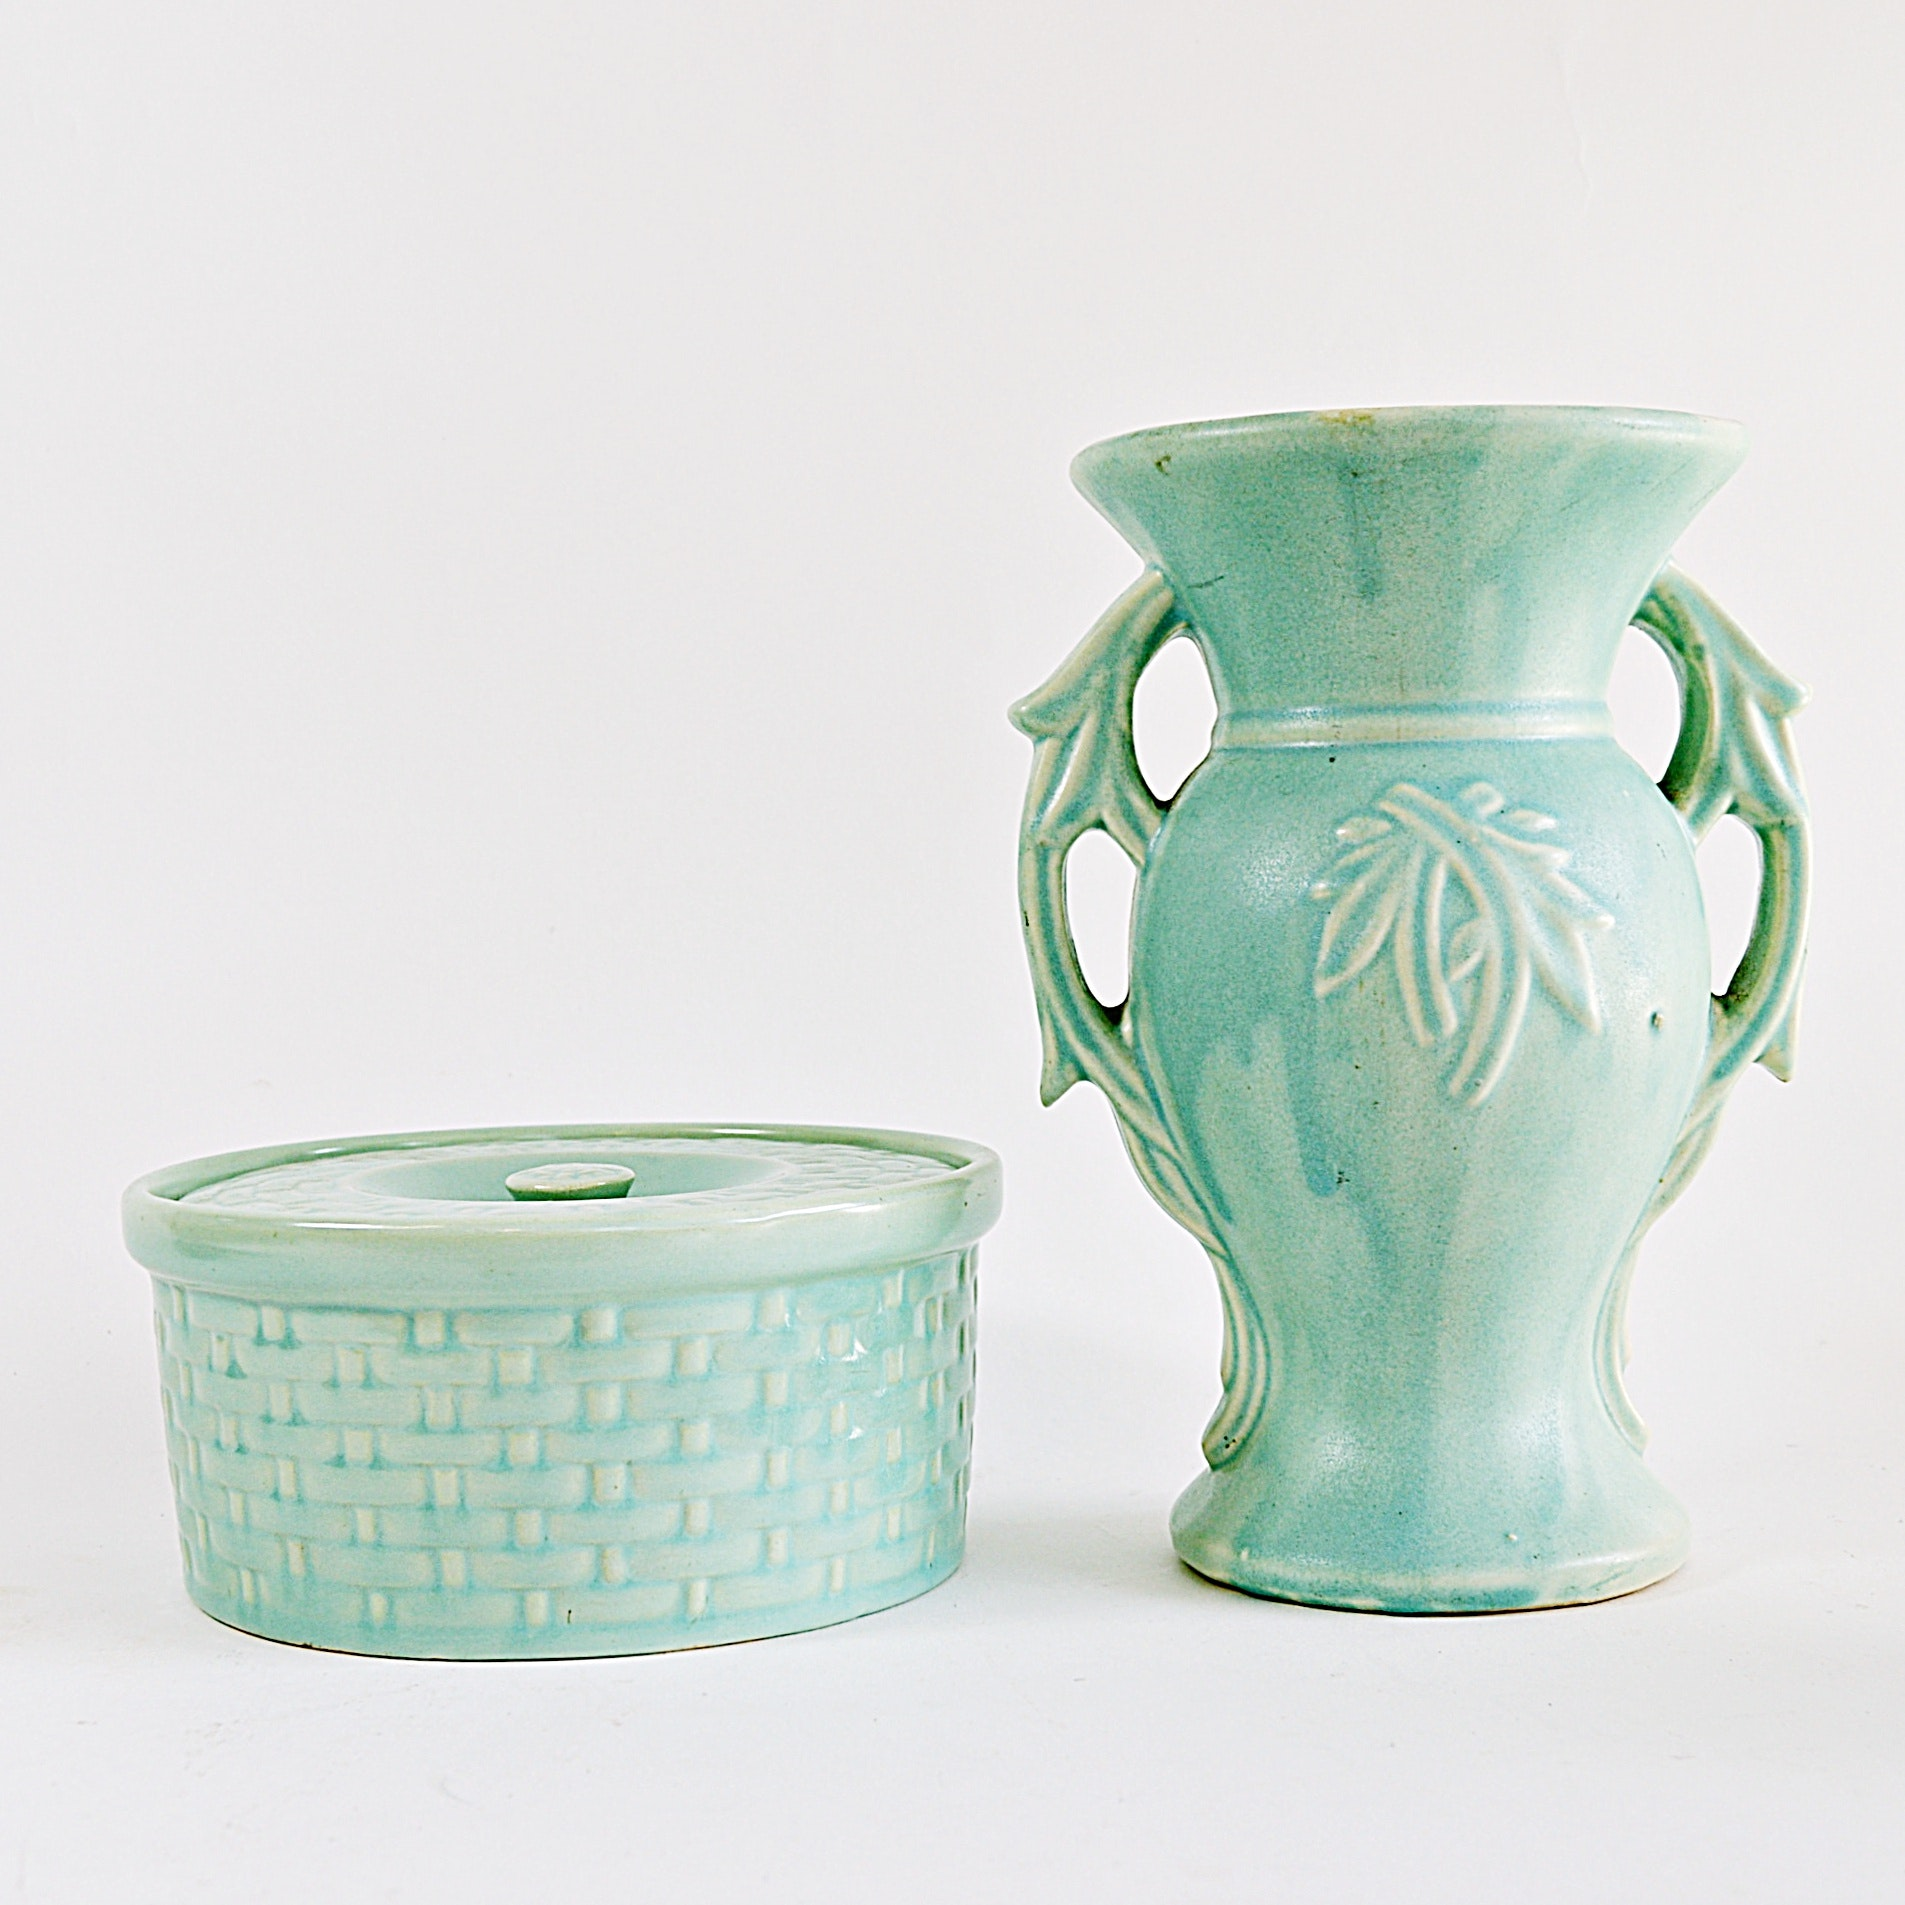 Weller Pottery Lidded Round Box and McCoy Pottery Vase